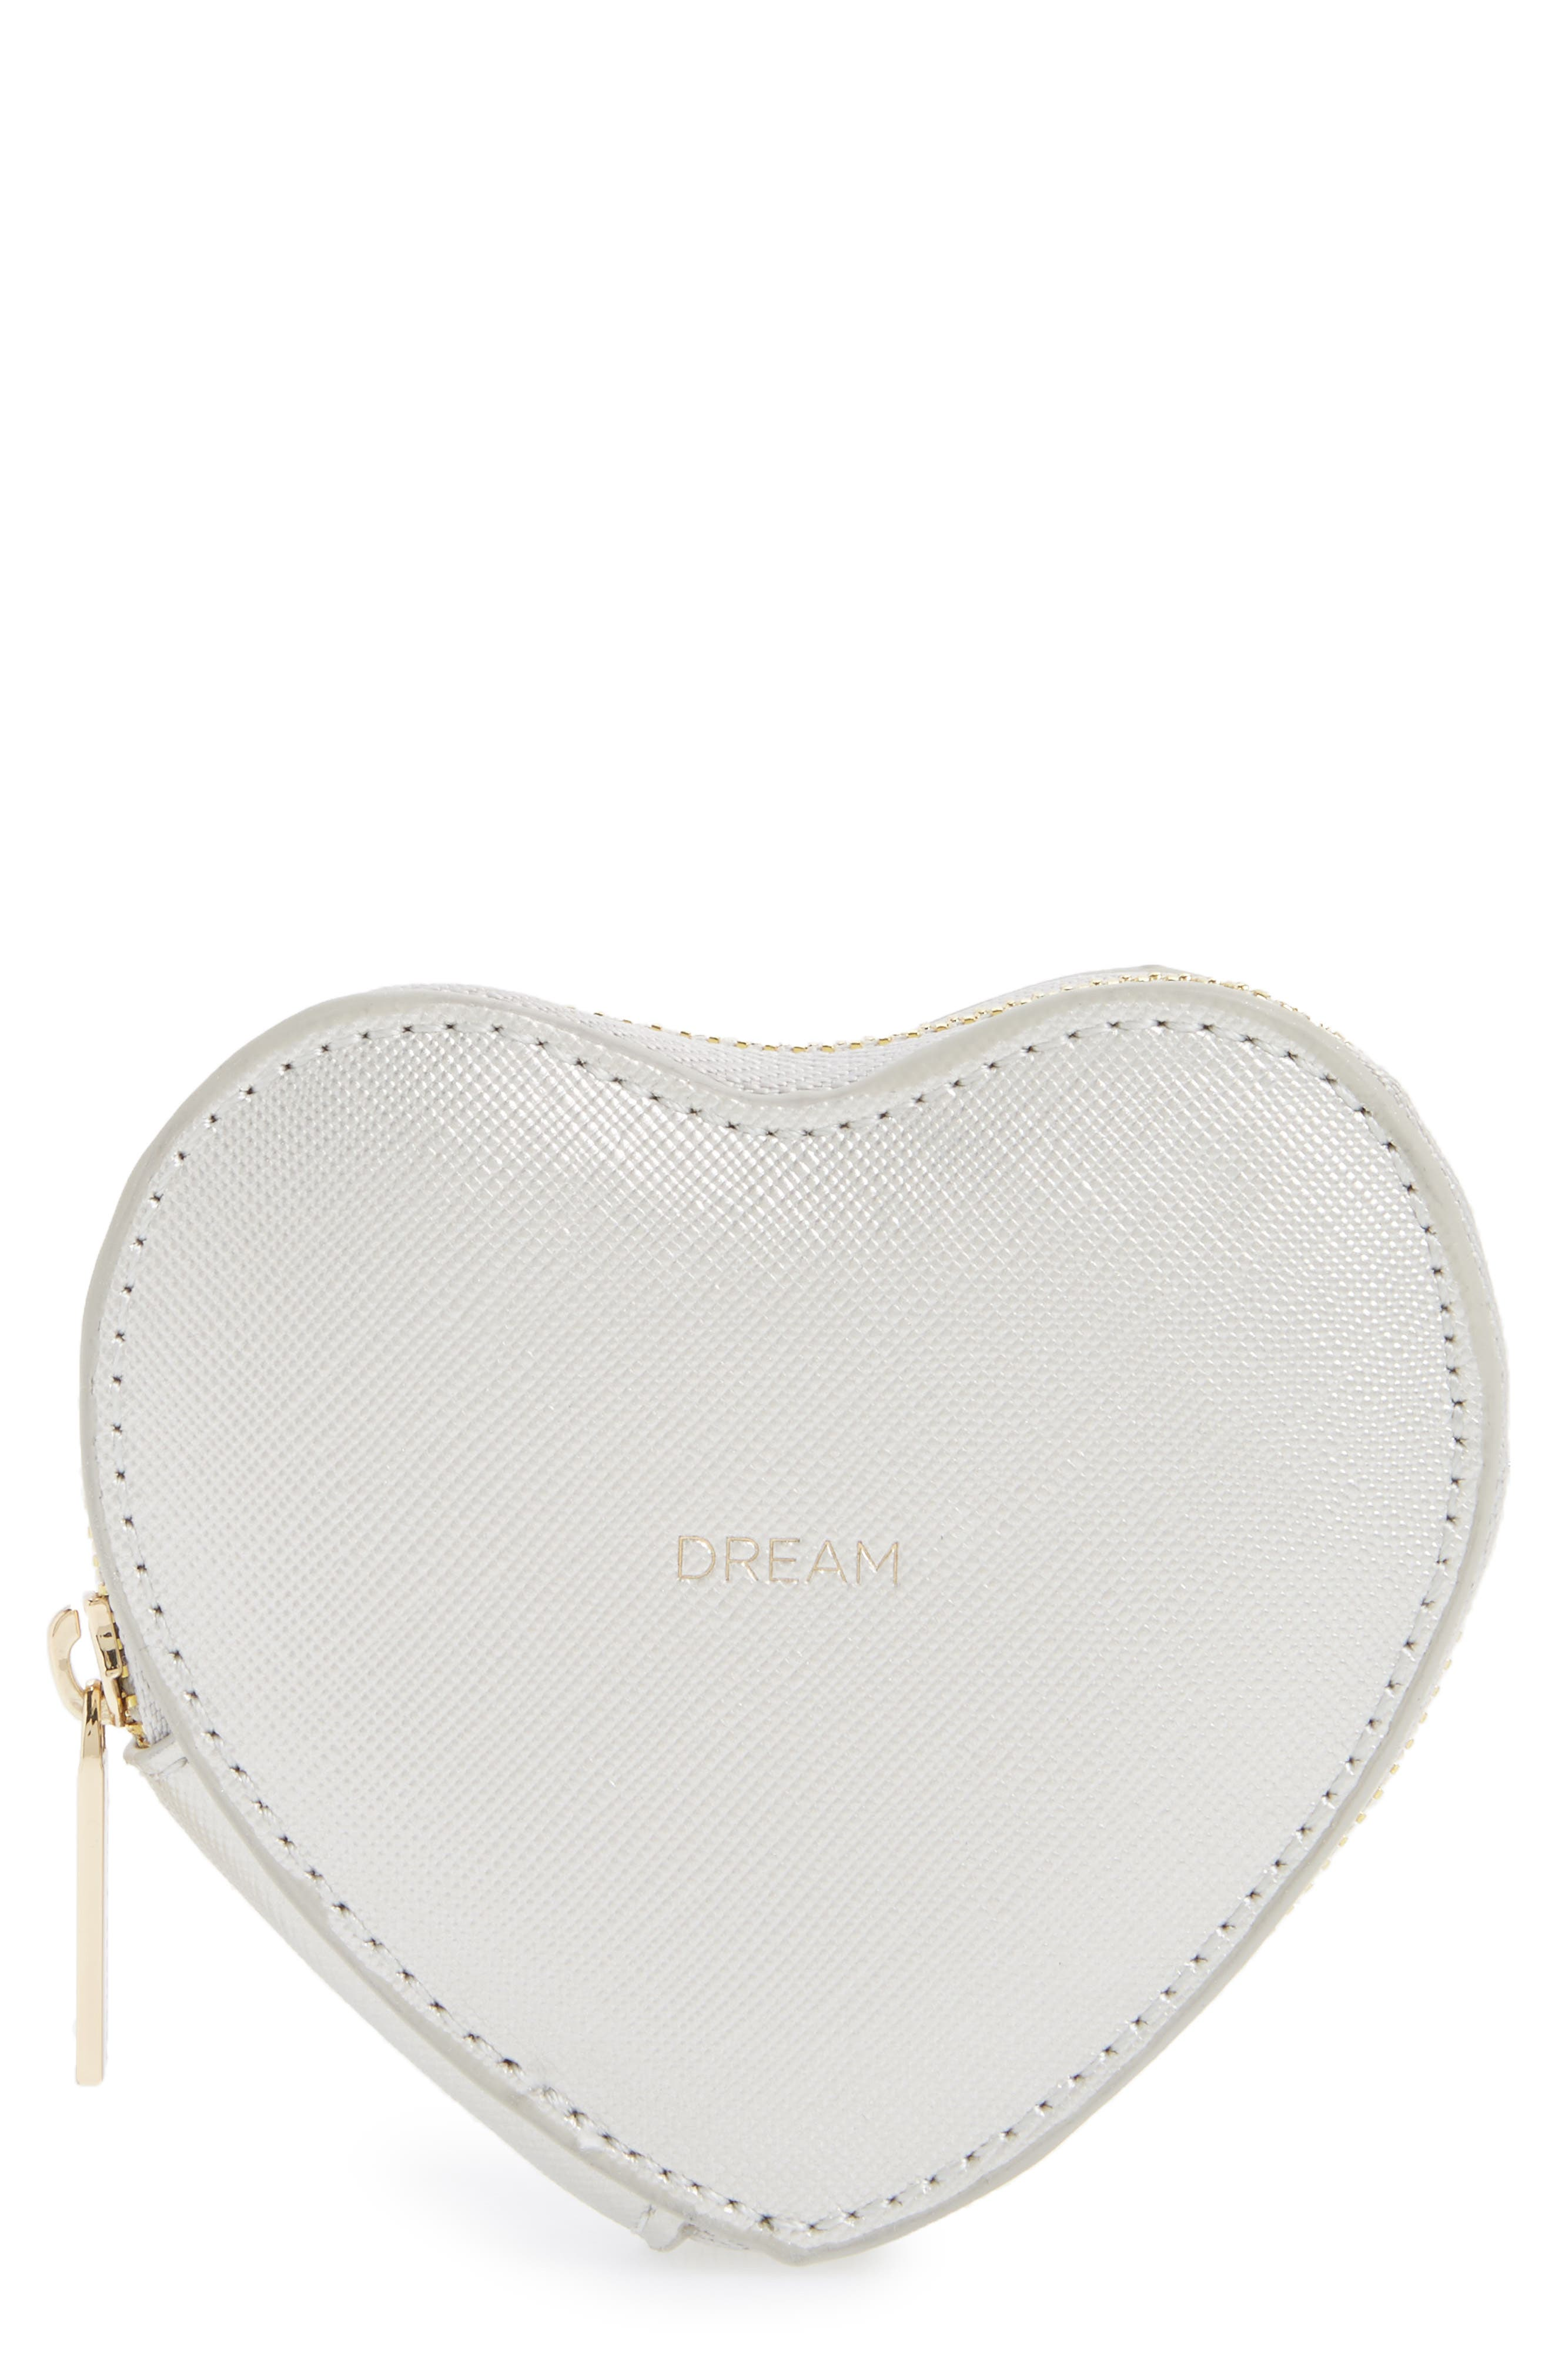 Heart Dream Faux Leather Coin Purse,                             Main thumbnail 1, color,                             Silver